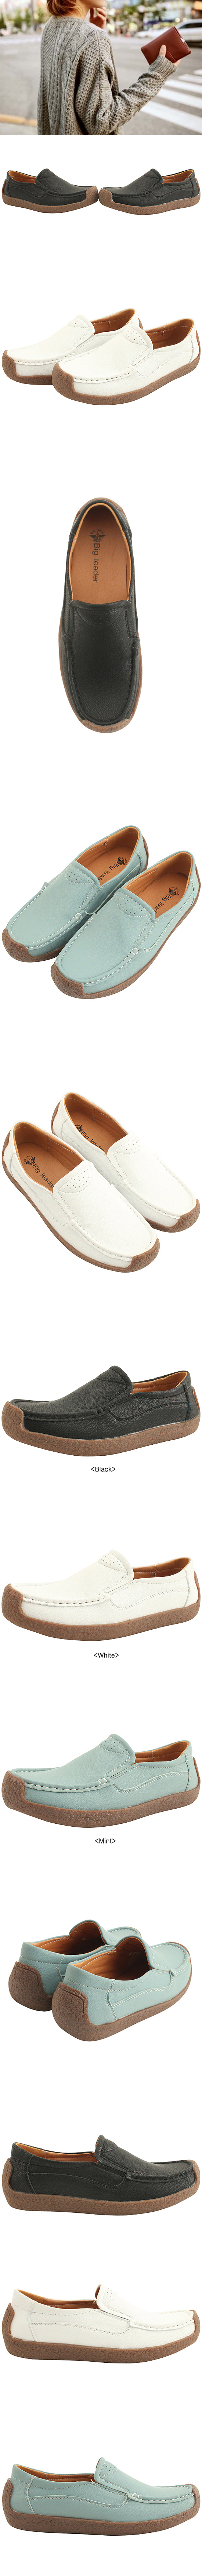 Comfort Daily Soft Loafers Shoes